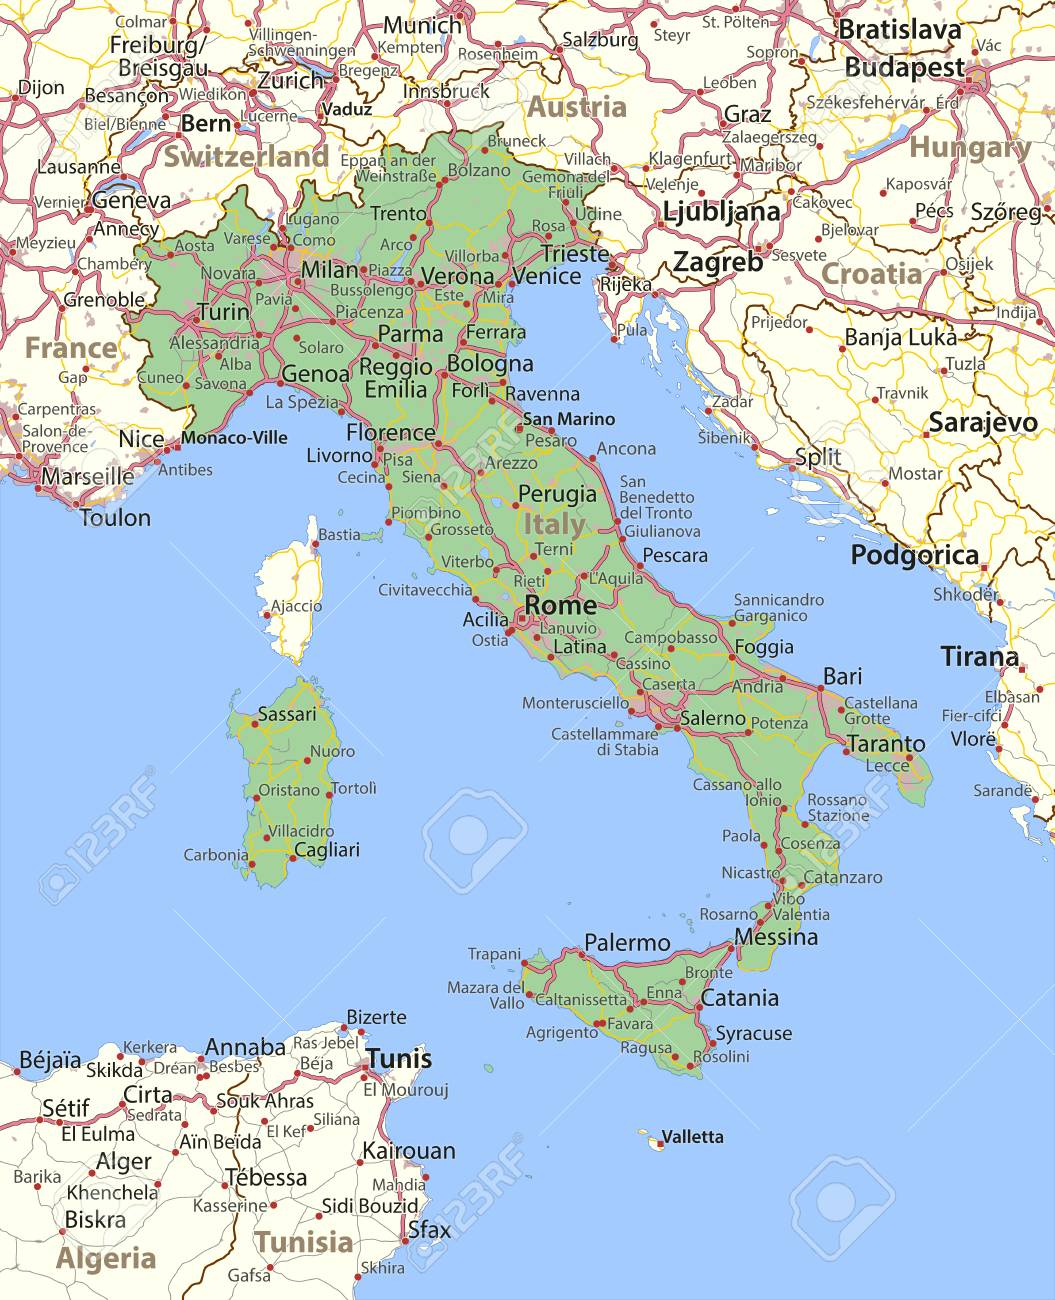 Map of Italy. Shows country borders, urban areas, place names..